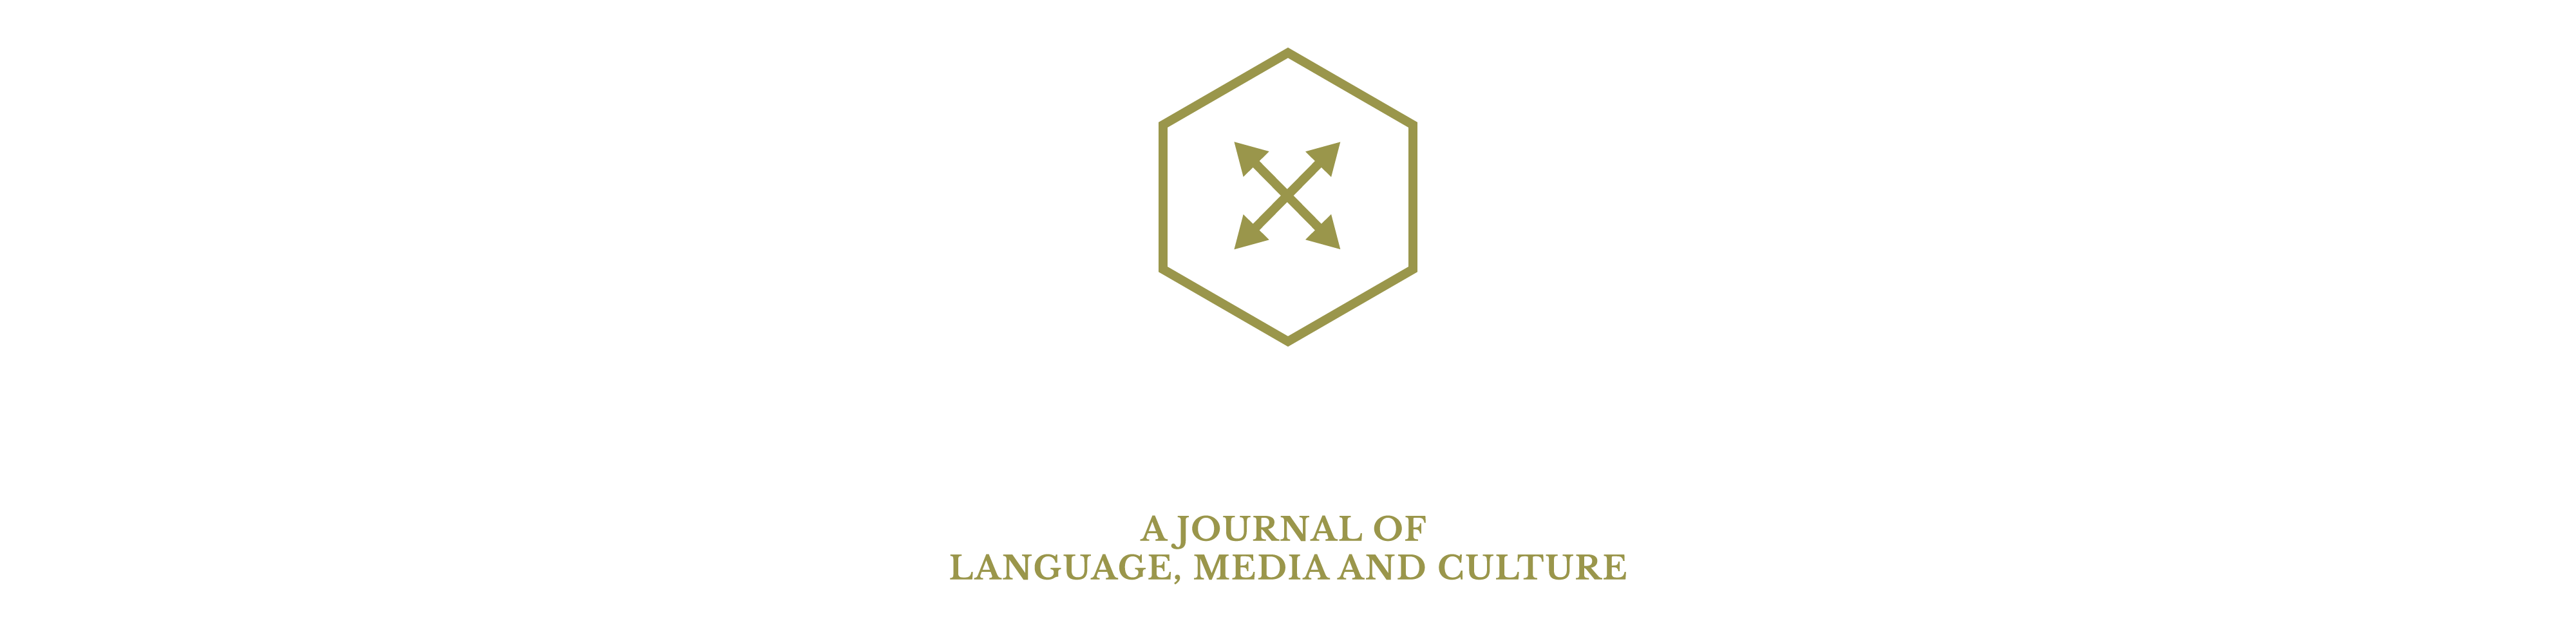 Connections: A Journal of Language, Media and Culture.